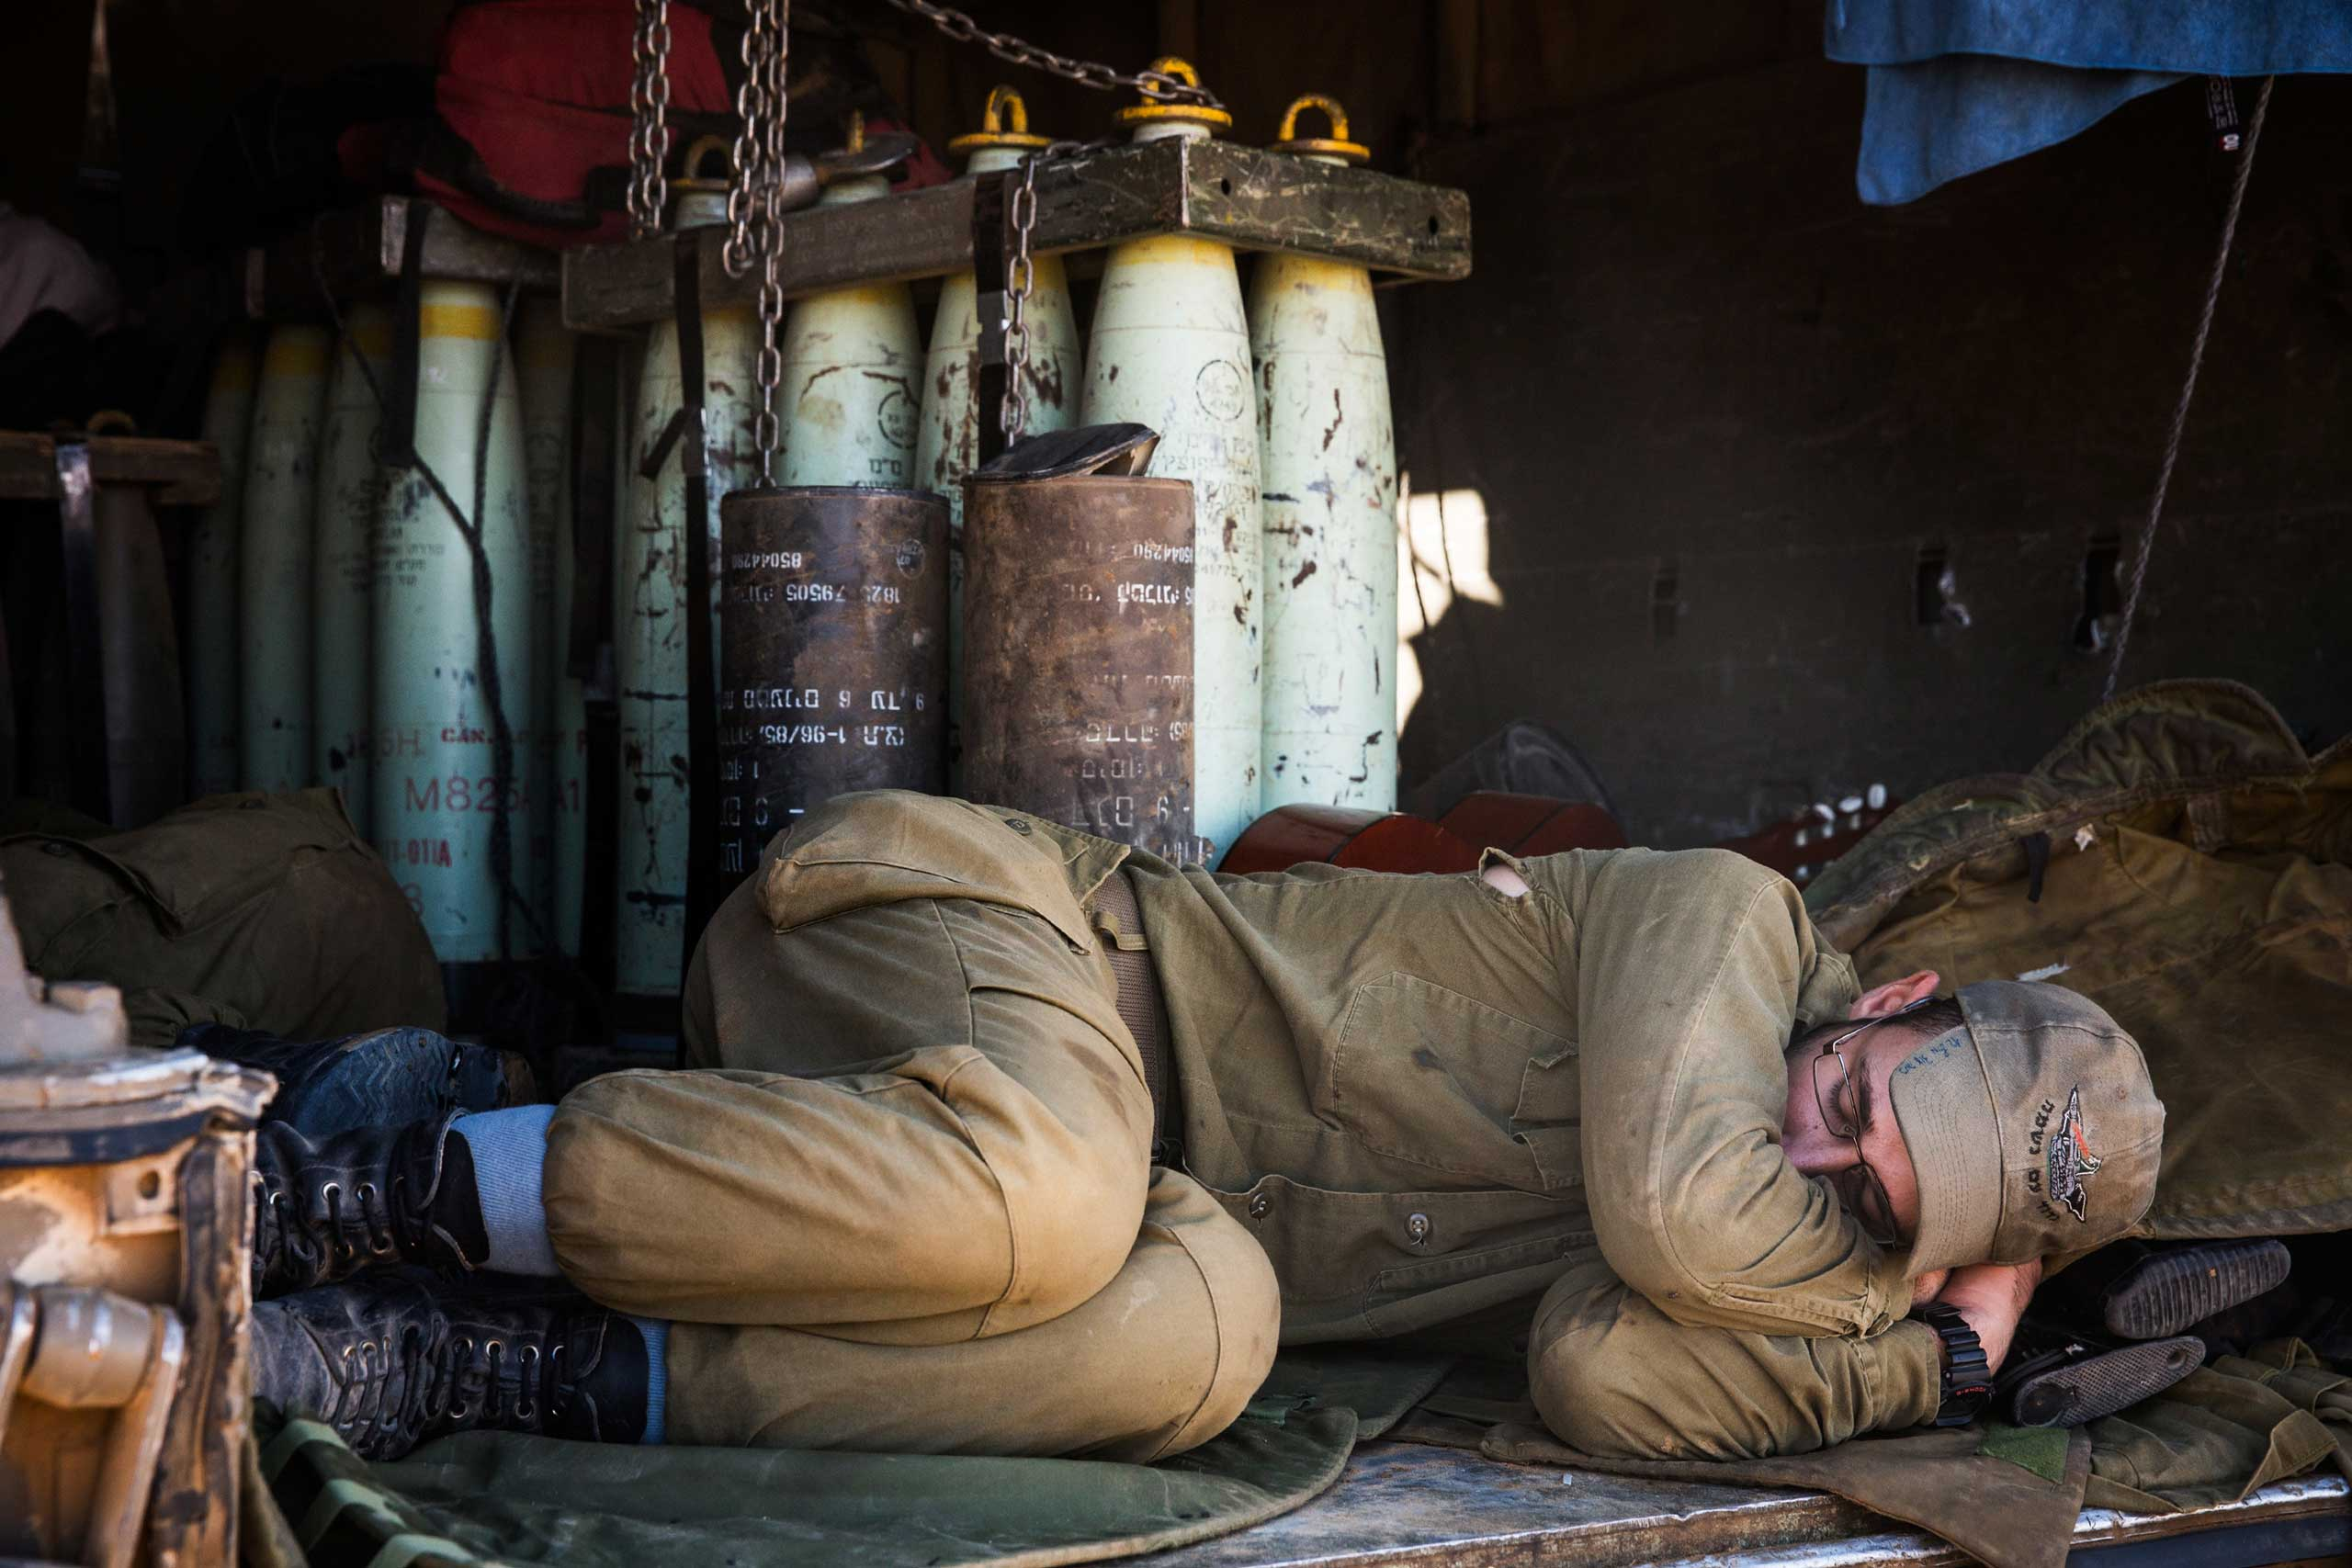 A soldier sleeps next to artillery shells close to the Israel-Gaza border near Sderot, Israel, July 19, 2014.